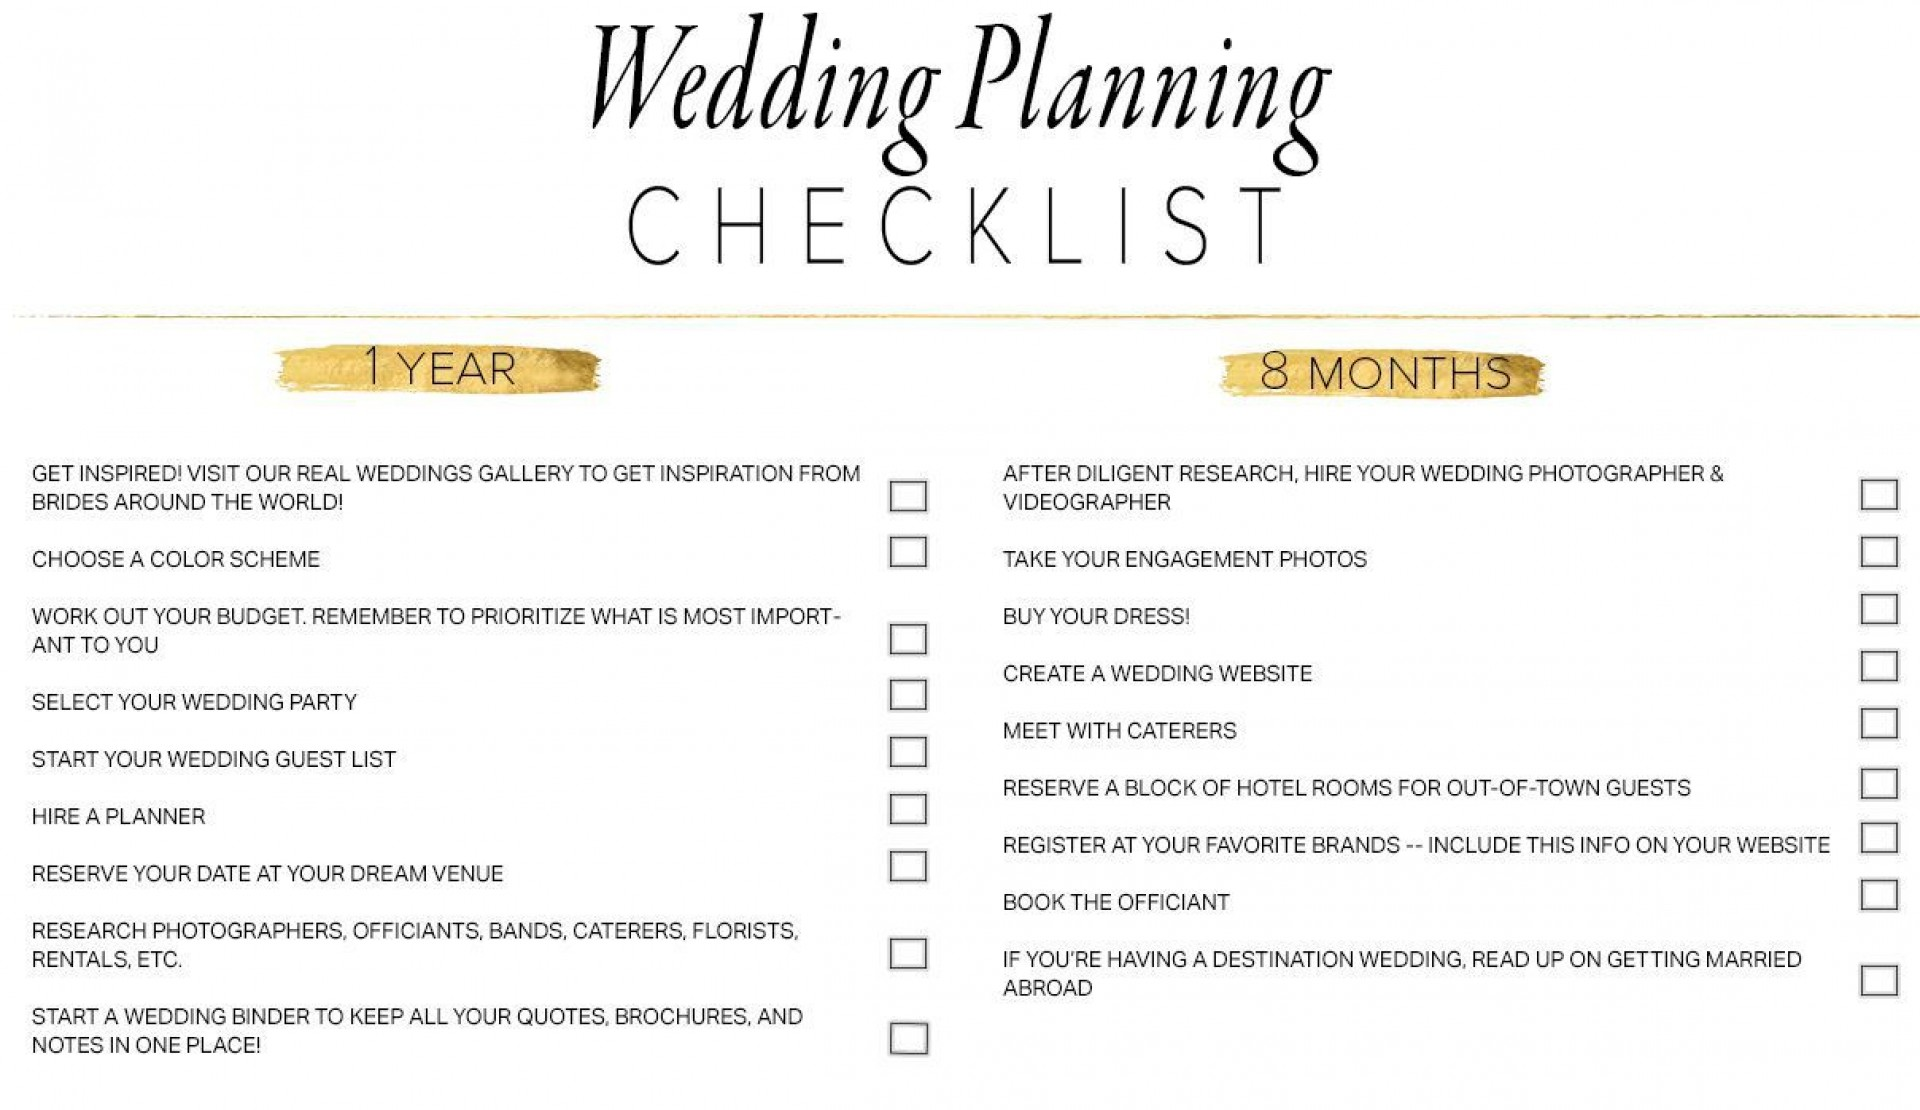 008 Fascinating Free Event Planner Checklist Template High Resolution  Planning Party1920